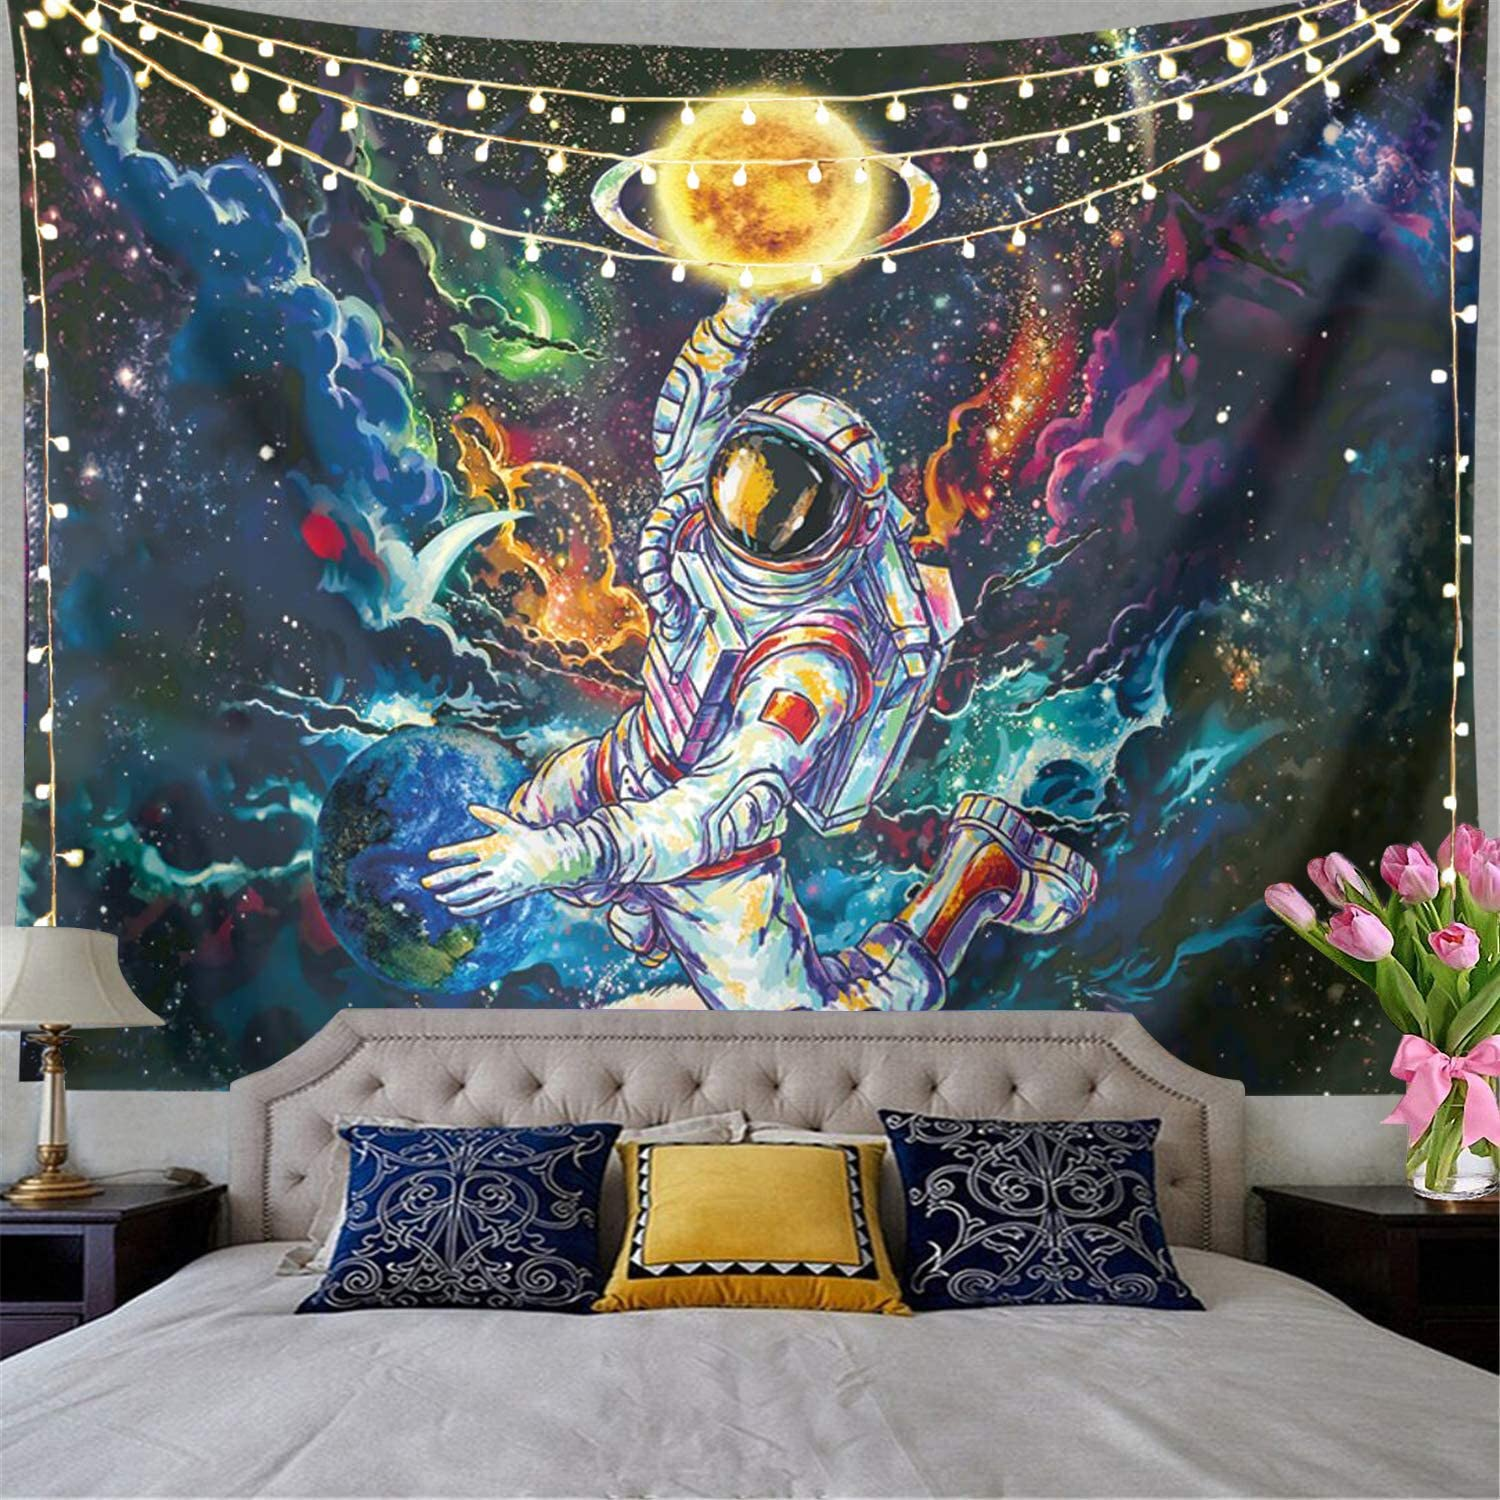 Trippy Astronaut Tapestry Galaxy Space Tapestry Poster Psychedelic Tapestry Cool Spaceman On Fantasy Universe Planets Starry Sky Tapestry Mens Guys Tapestry For Bedroom Cool Room Decor. (78